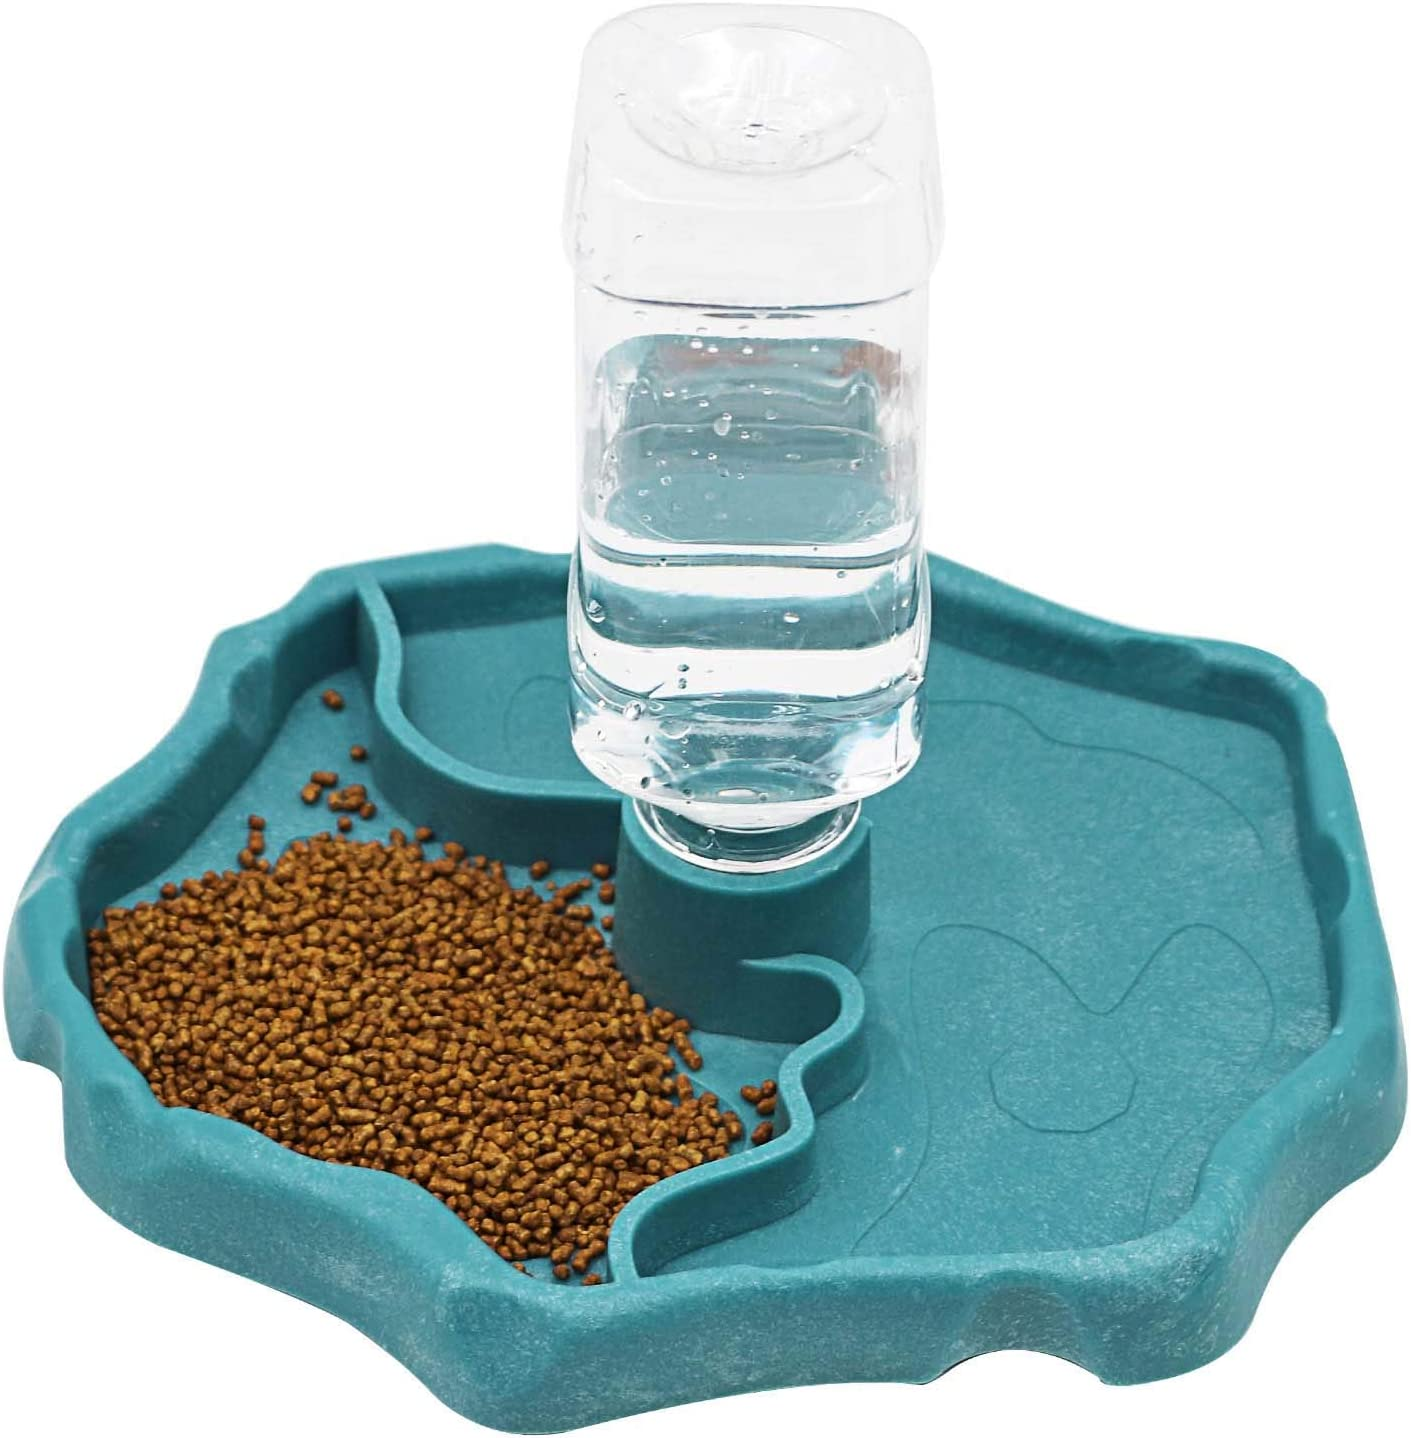 MACGOAL Automatic Reptile Feeder Reptile Food and Water Dish Bowl Reptile Water Dish with Bottle Tortoise Turtle Water Dispenser for Bearded Dragon Gecko Lizard (Blue)